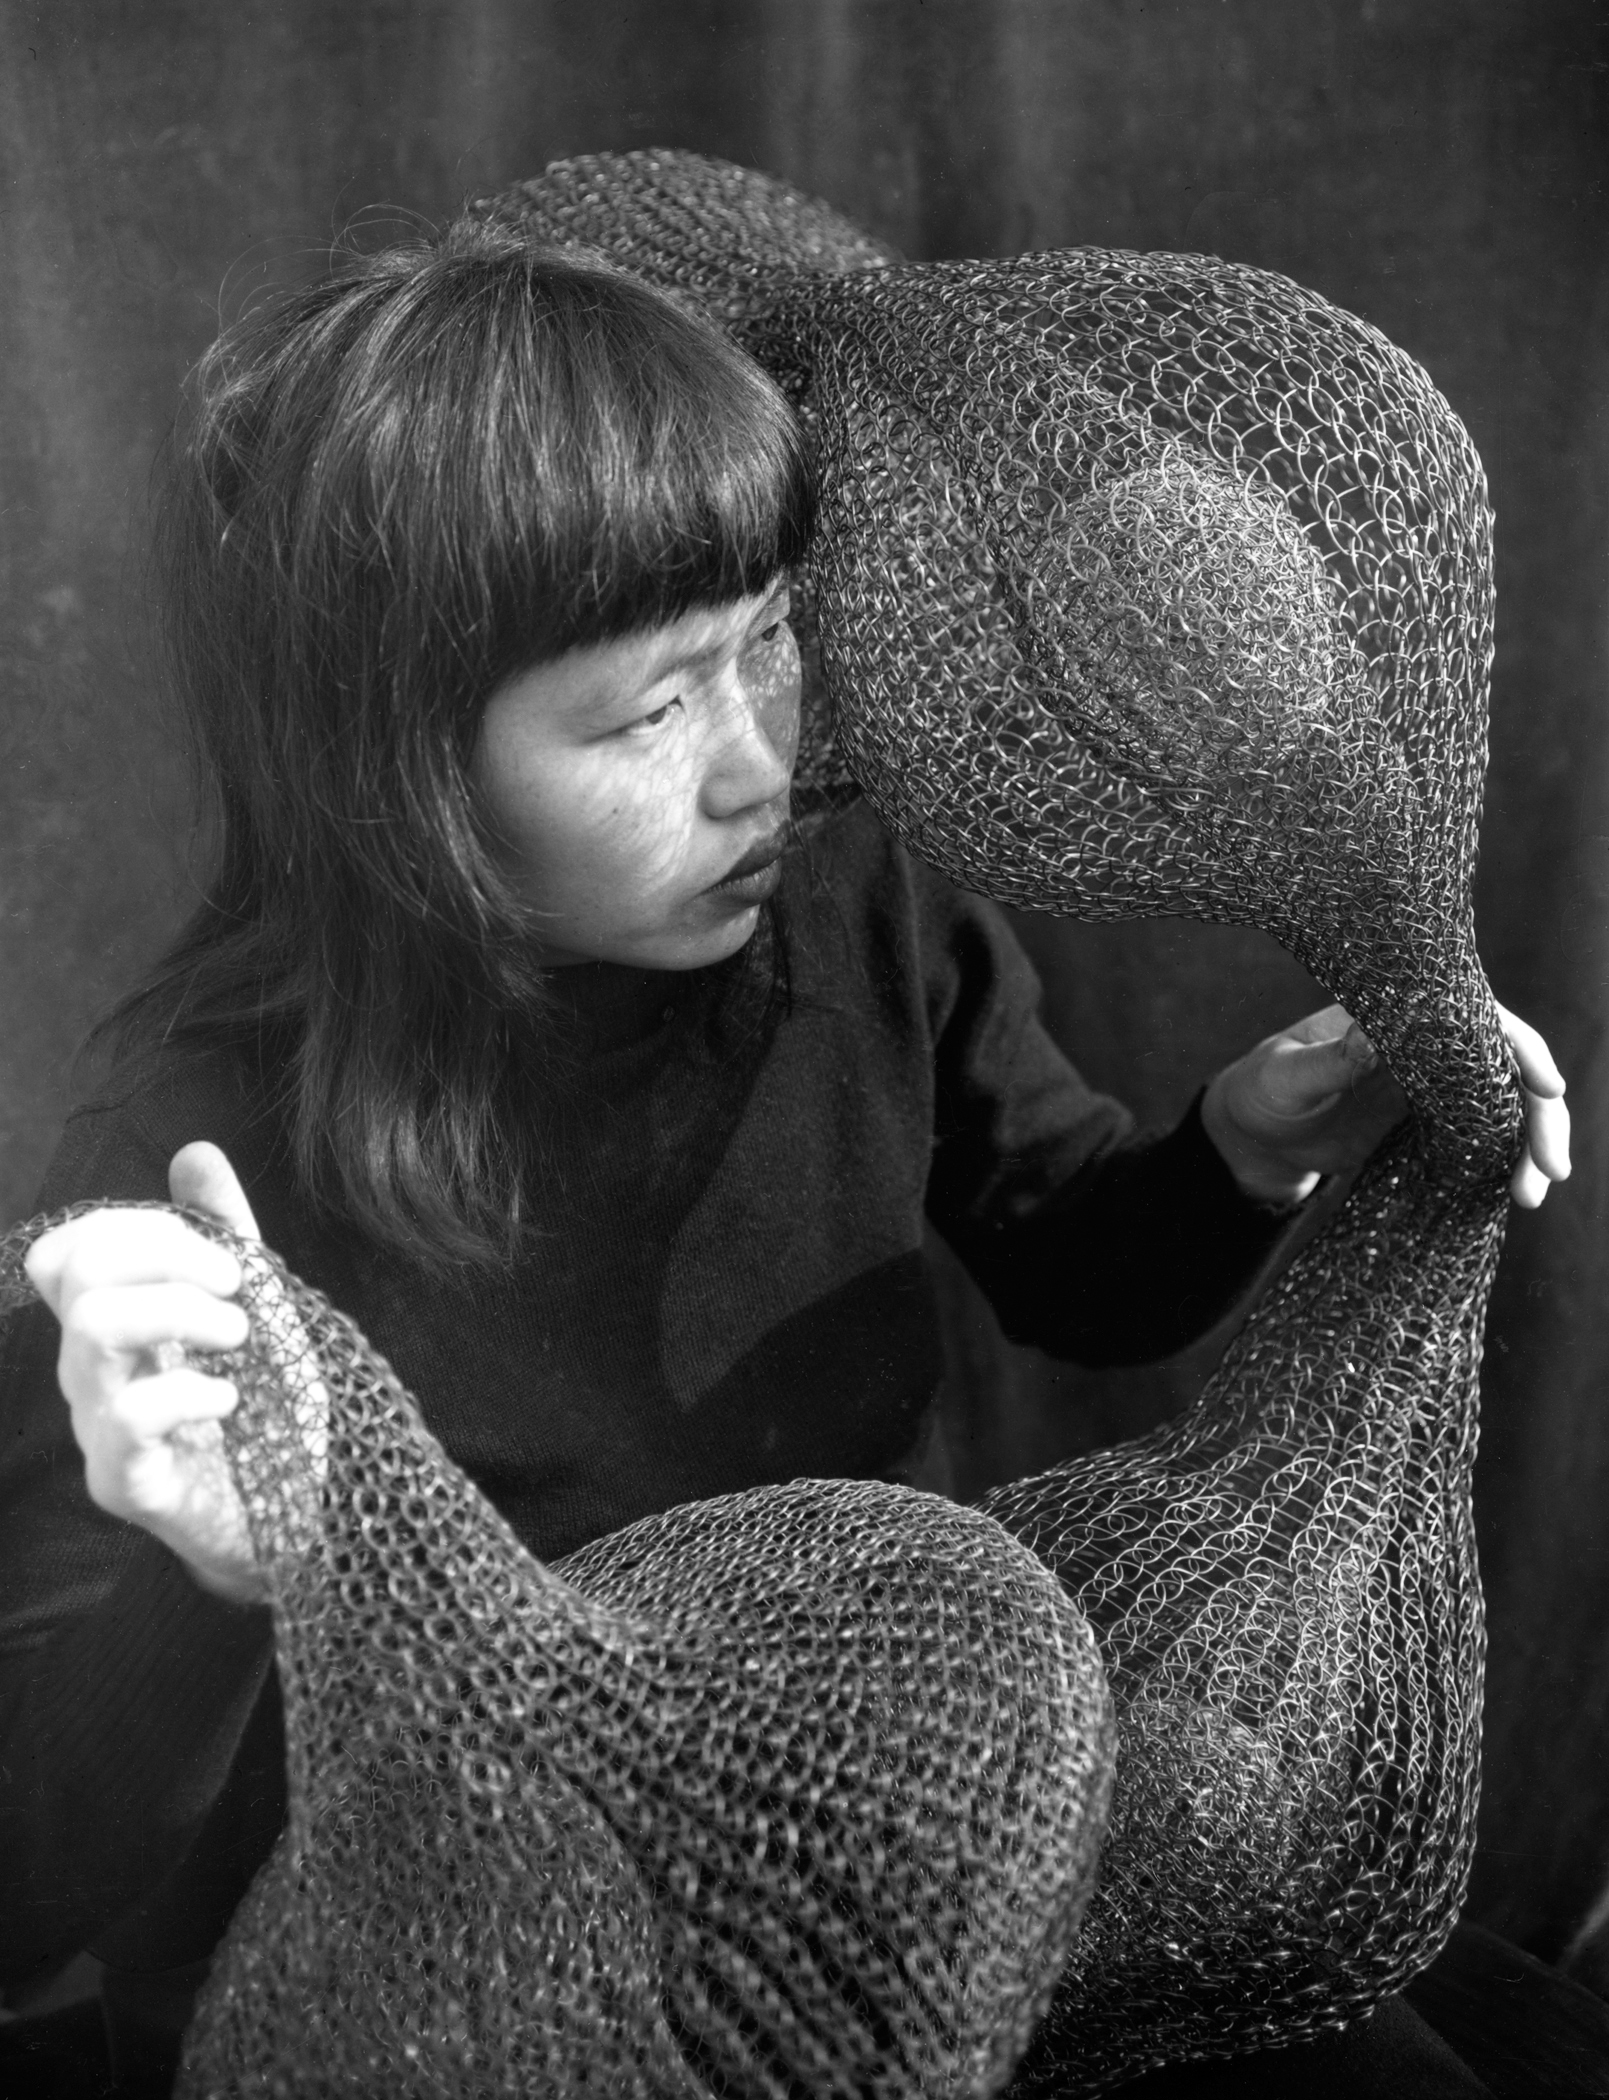 ruth_asawa_holding_a_form-within-form_sculpture_5x7